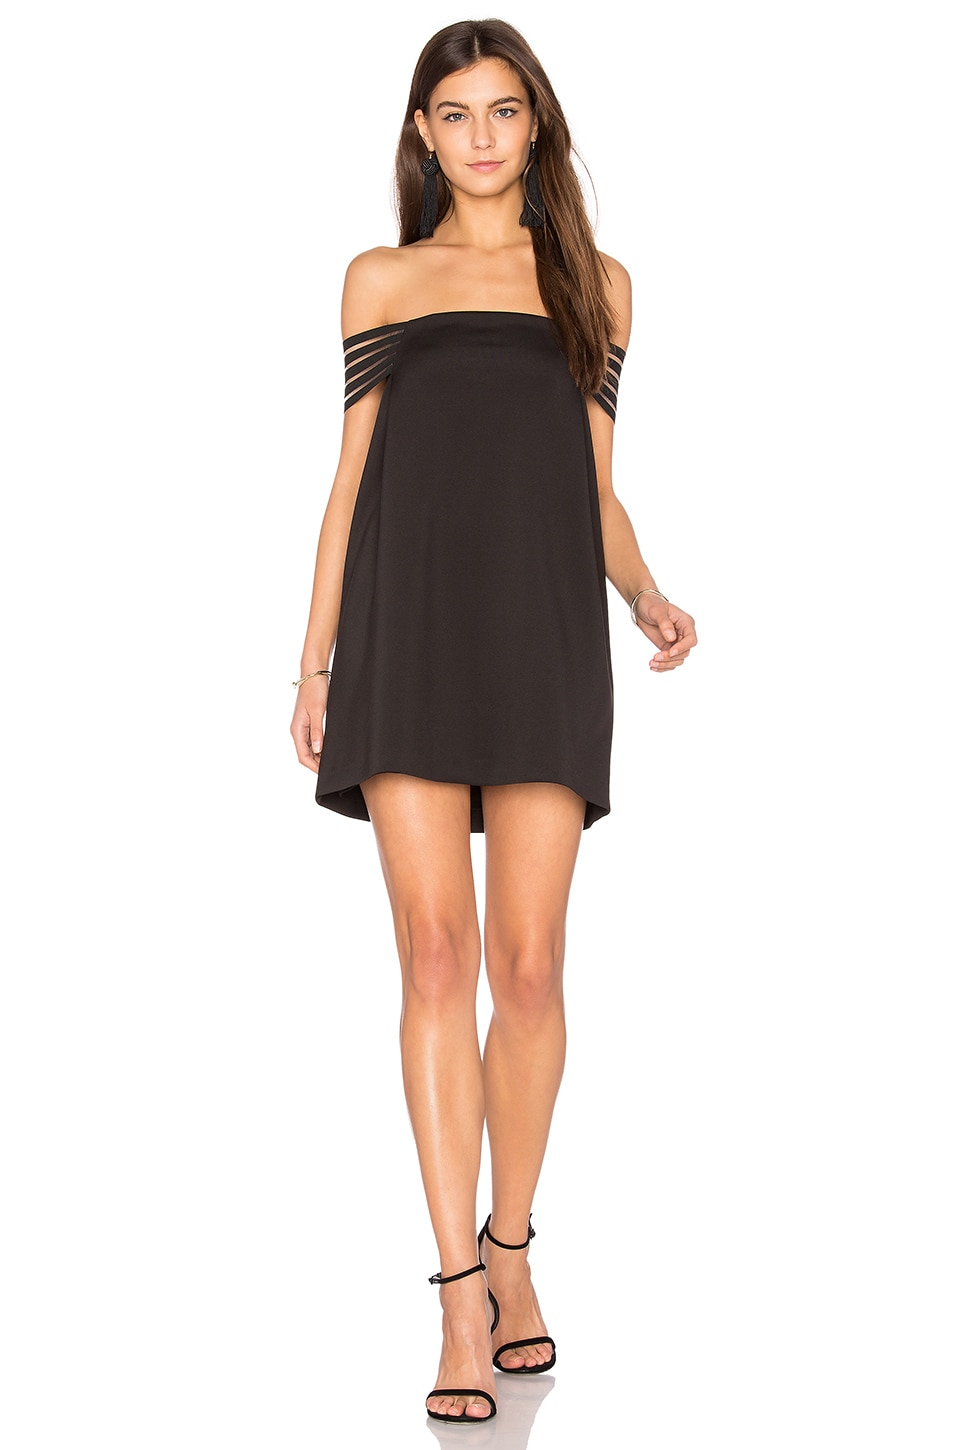 Dolce Vita Silvan Dress in Black